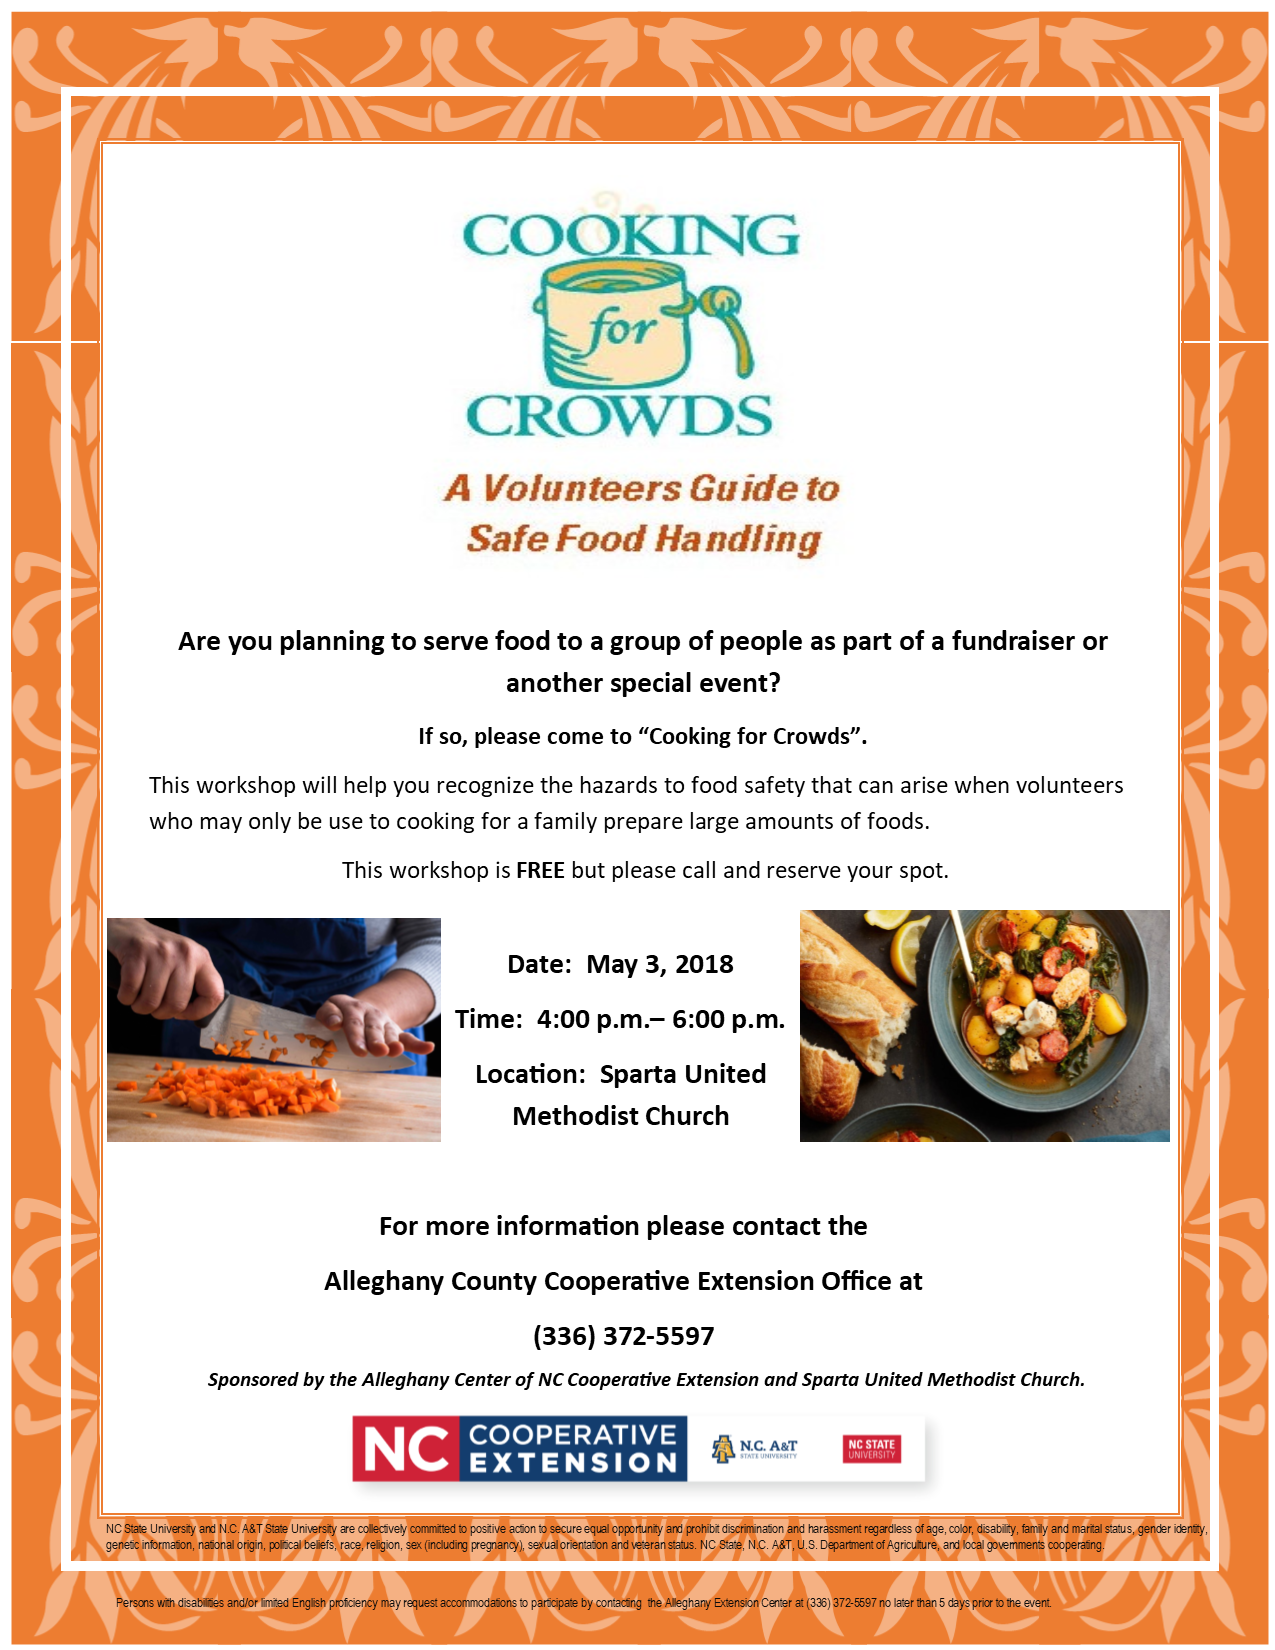 Cooking for crowds flyer